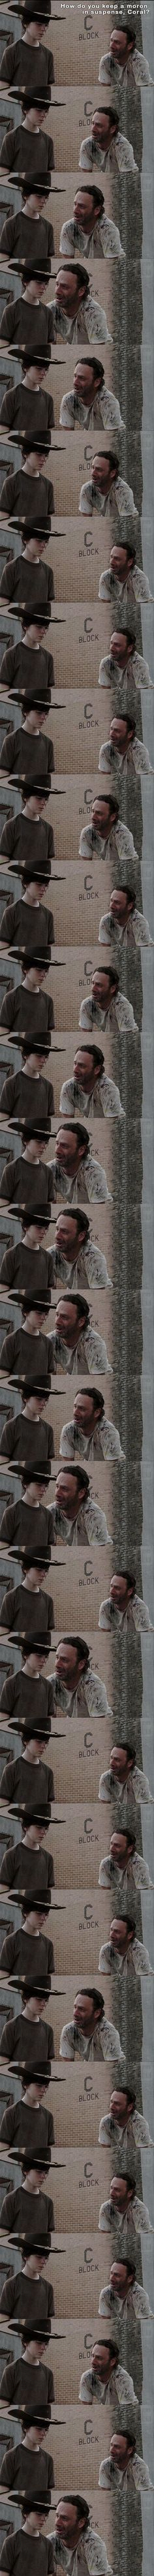 Rick Grimes? Love these